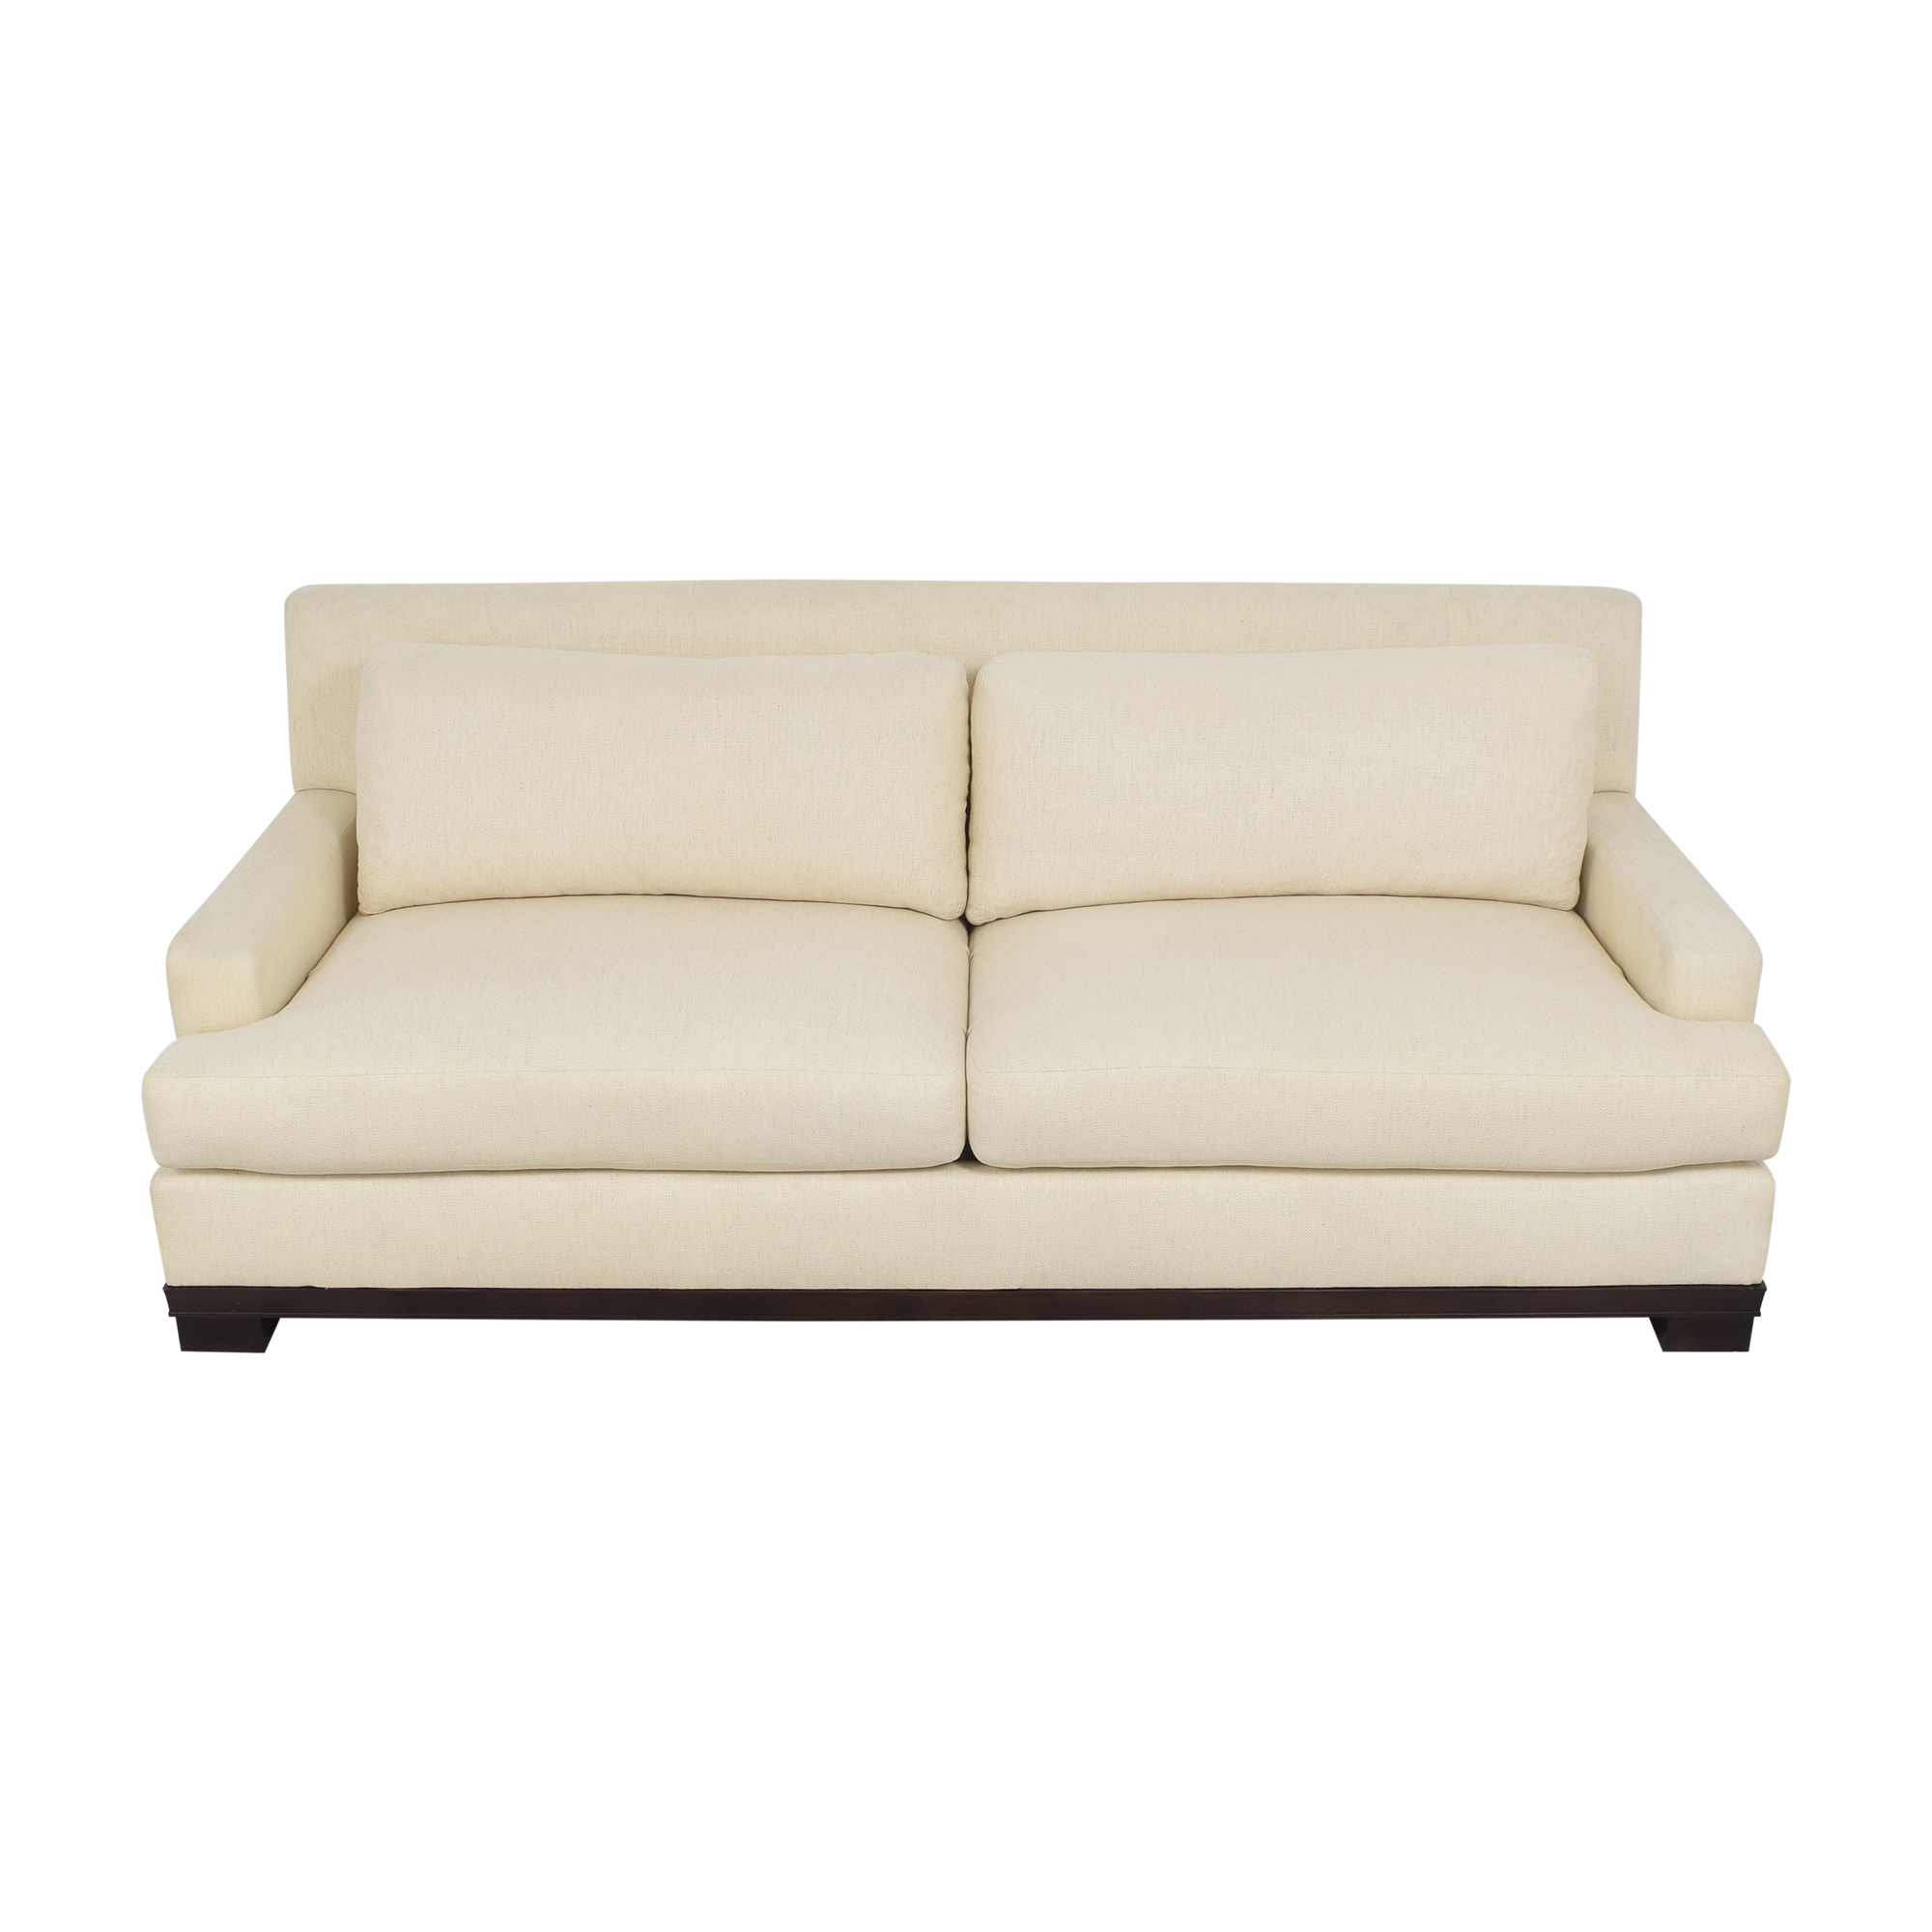 Bloomingdale's Bloomingdale's by Barbara Barry Oval Collection Sofa nyc